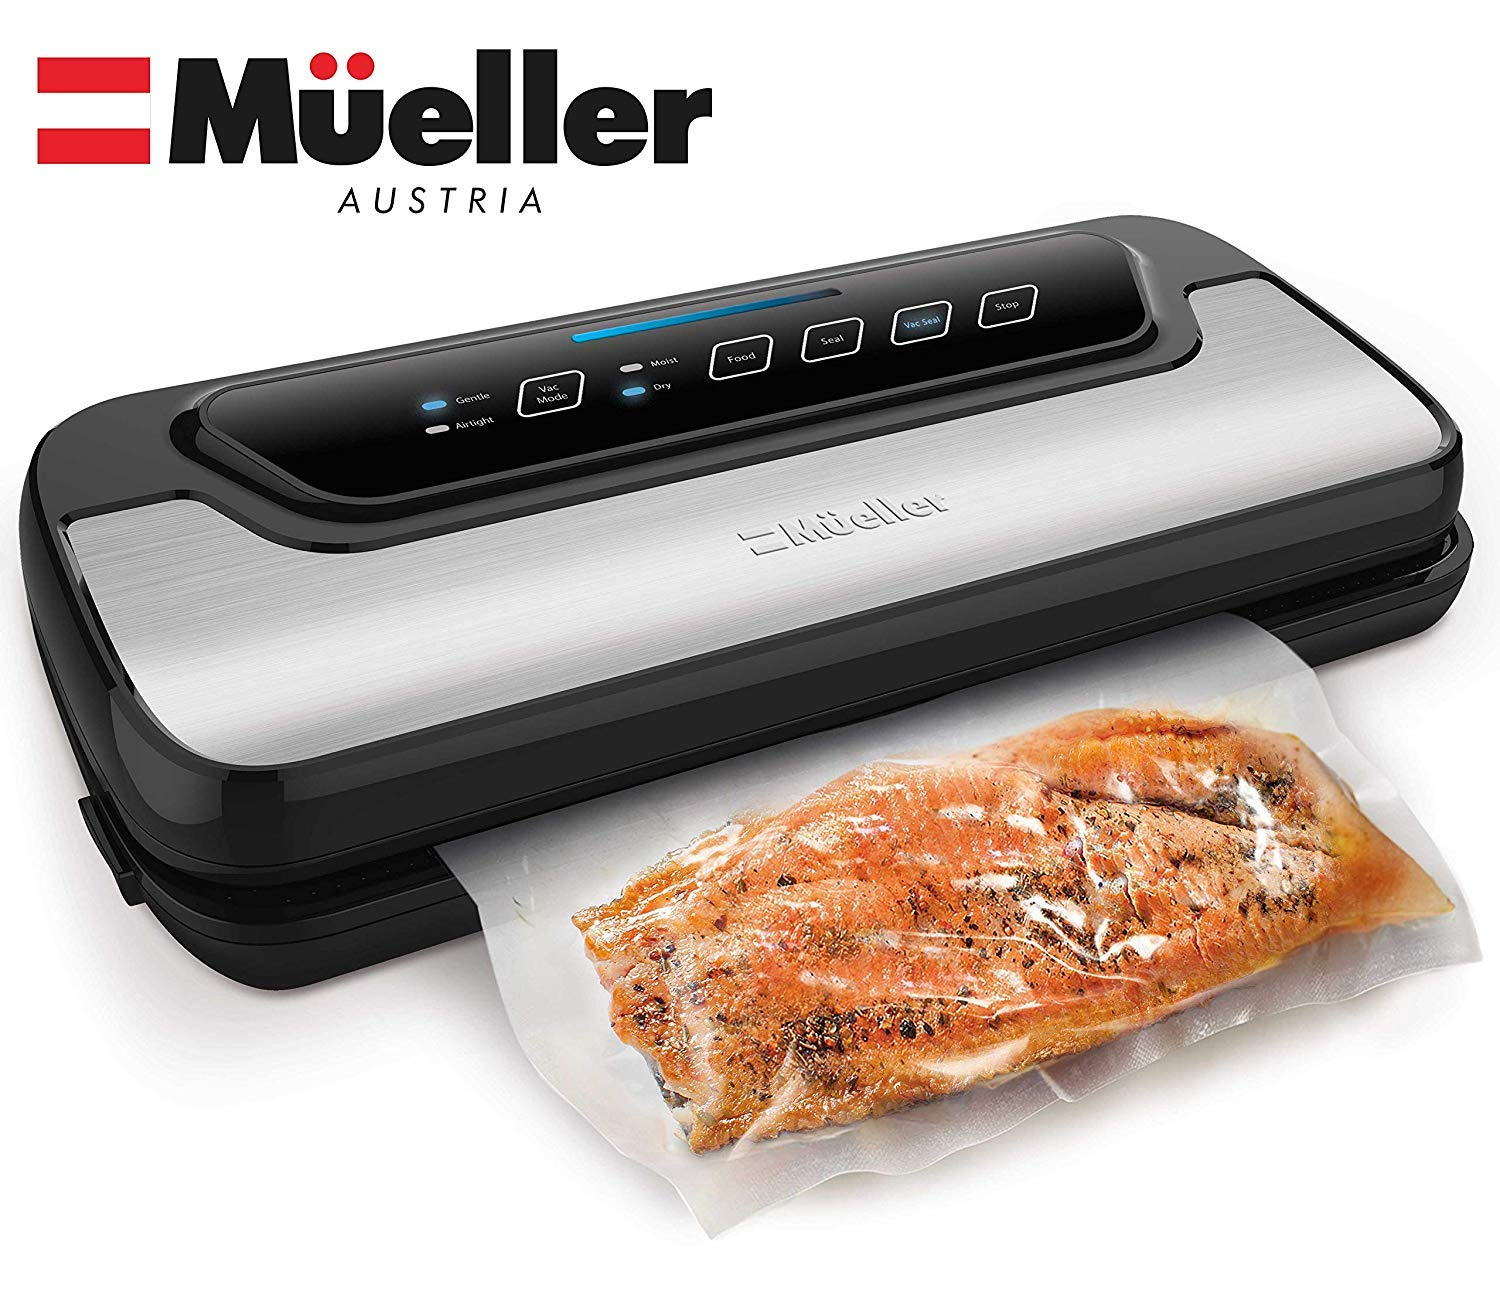 Vacuum Sealer Machine By Mueller | Automatic Vacuum Air Sealing System For Food Preservation w/Starter Kit | Compact Design | Lab Tested | Dry & Moist Food Modes | Led Indicator Lights by Mueller Austria